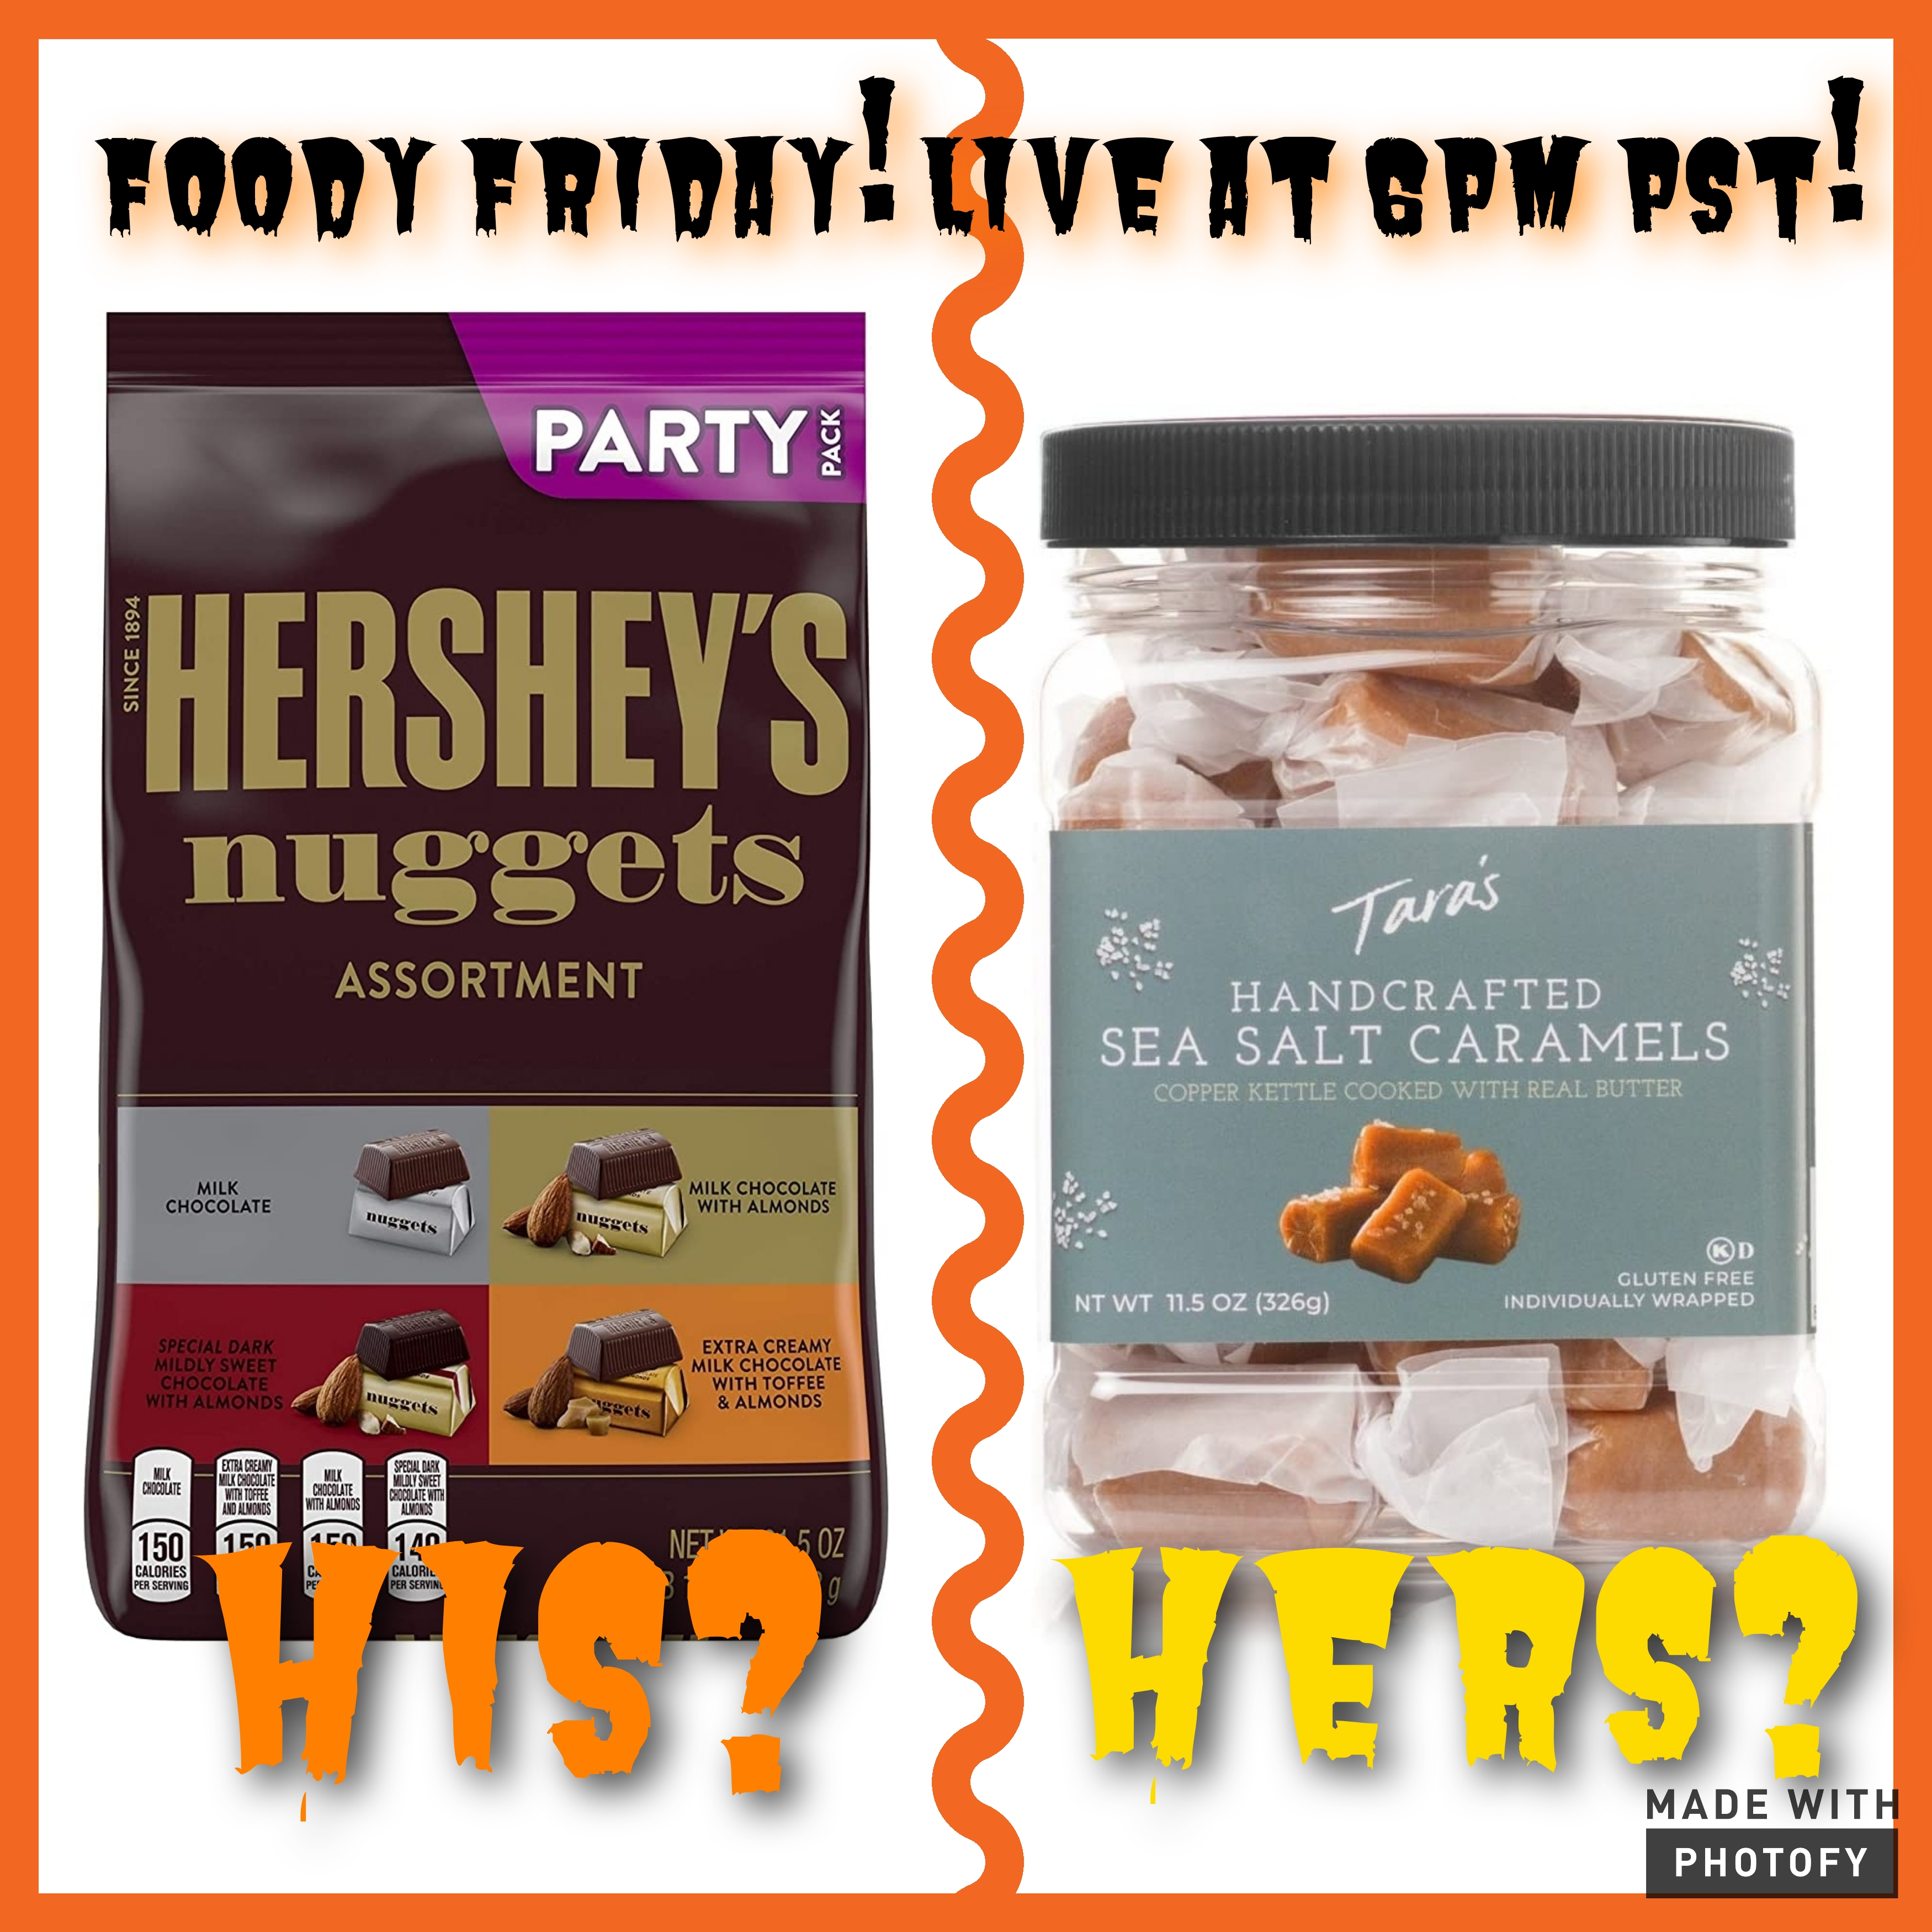 Foody Friday Live at 6pm pst